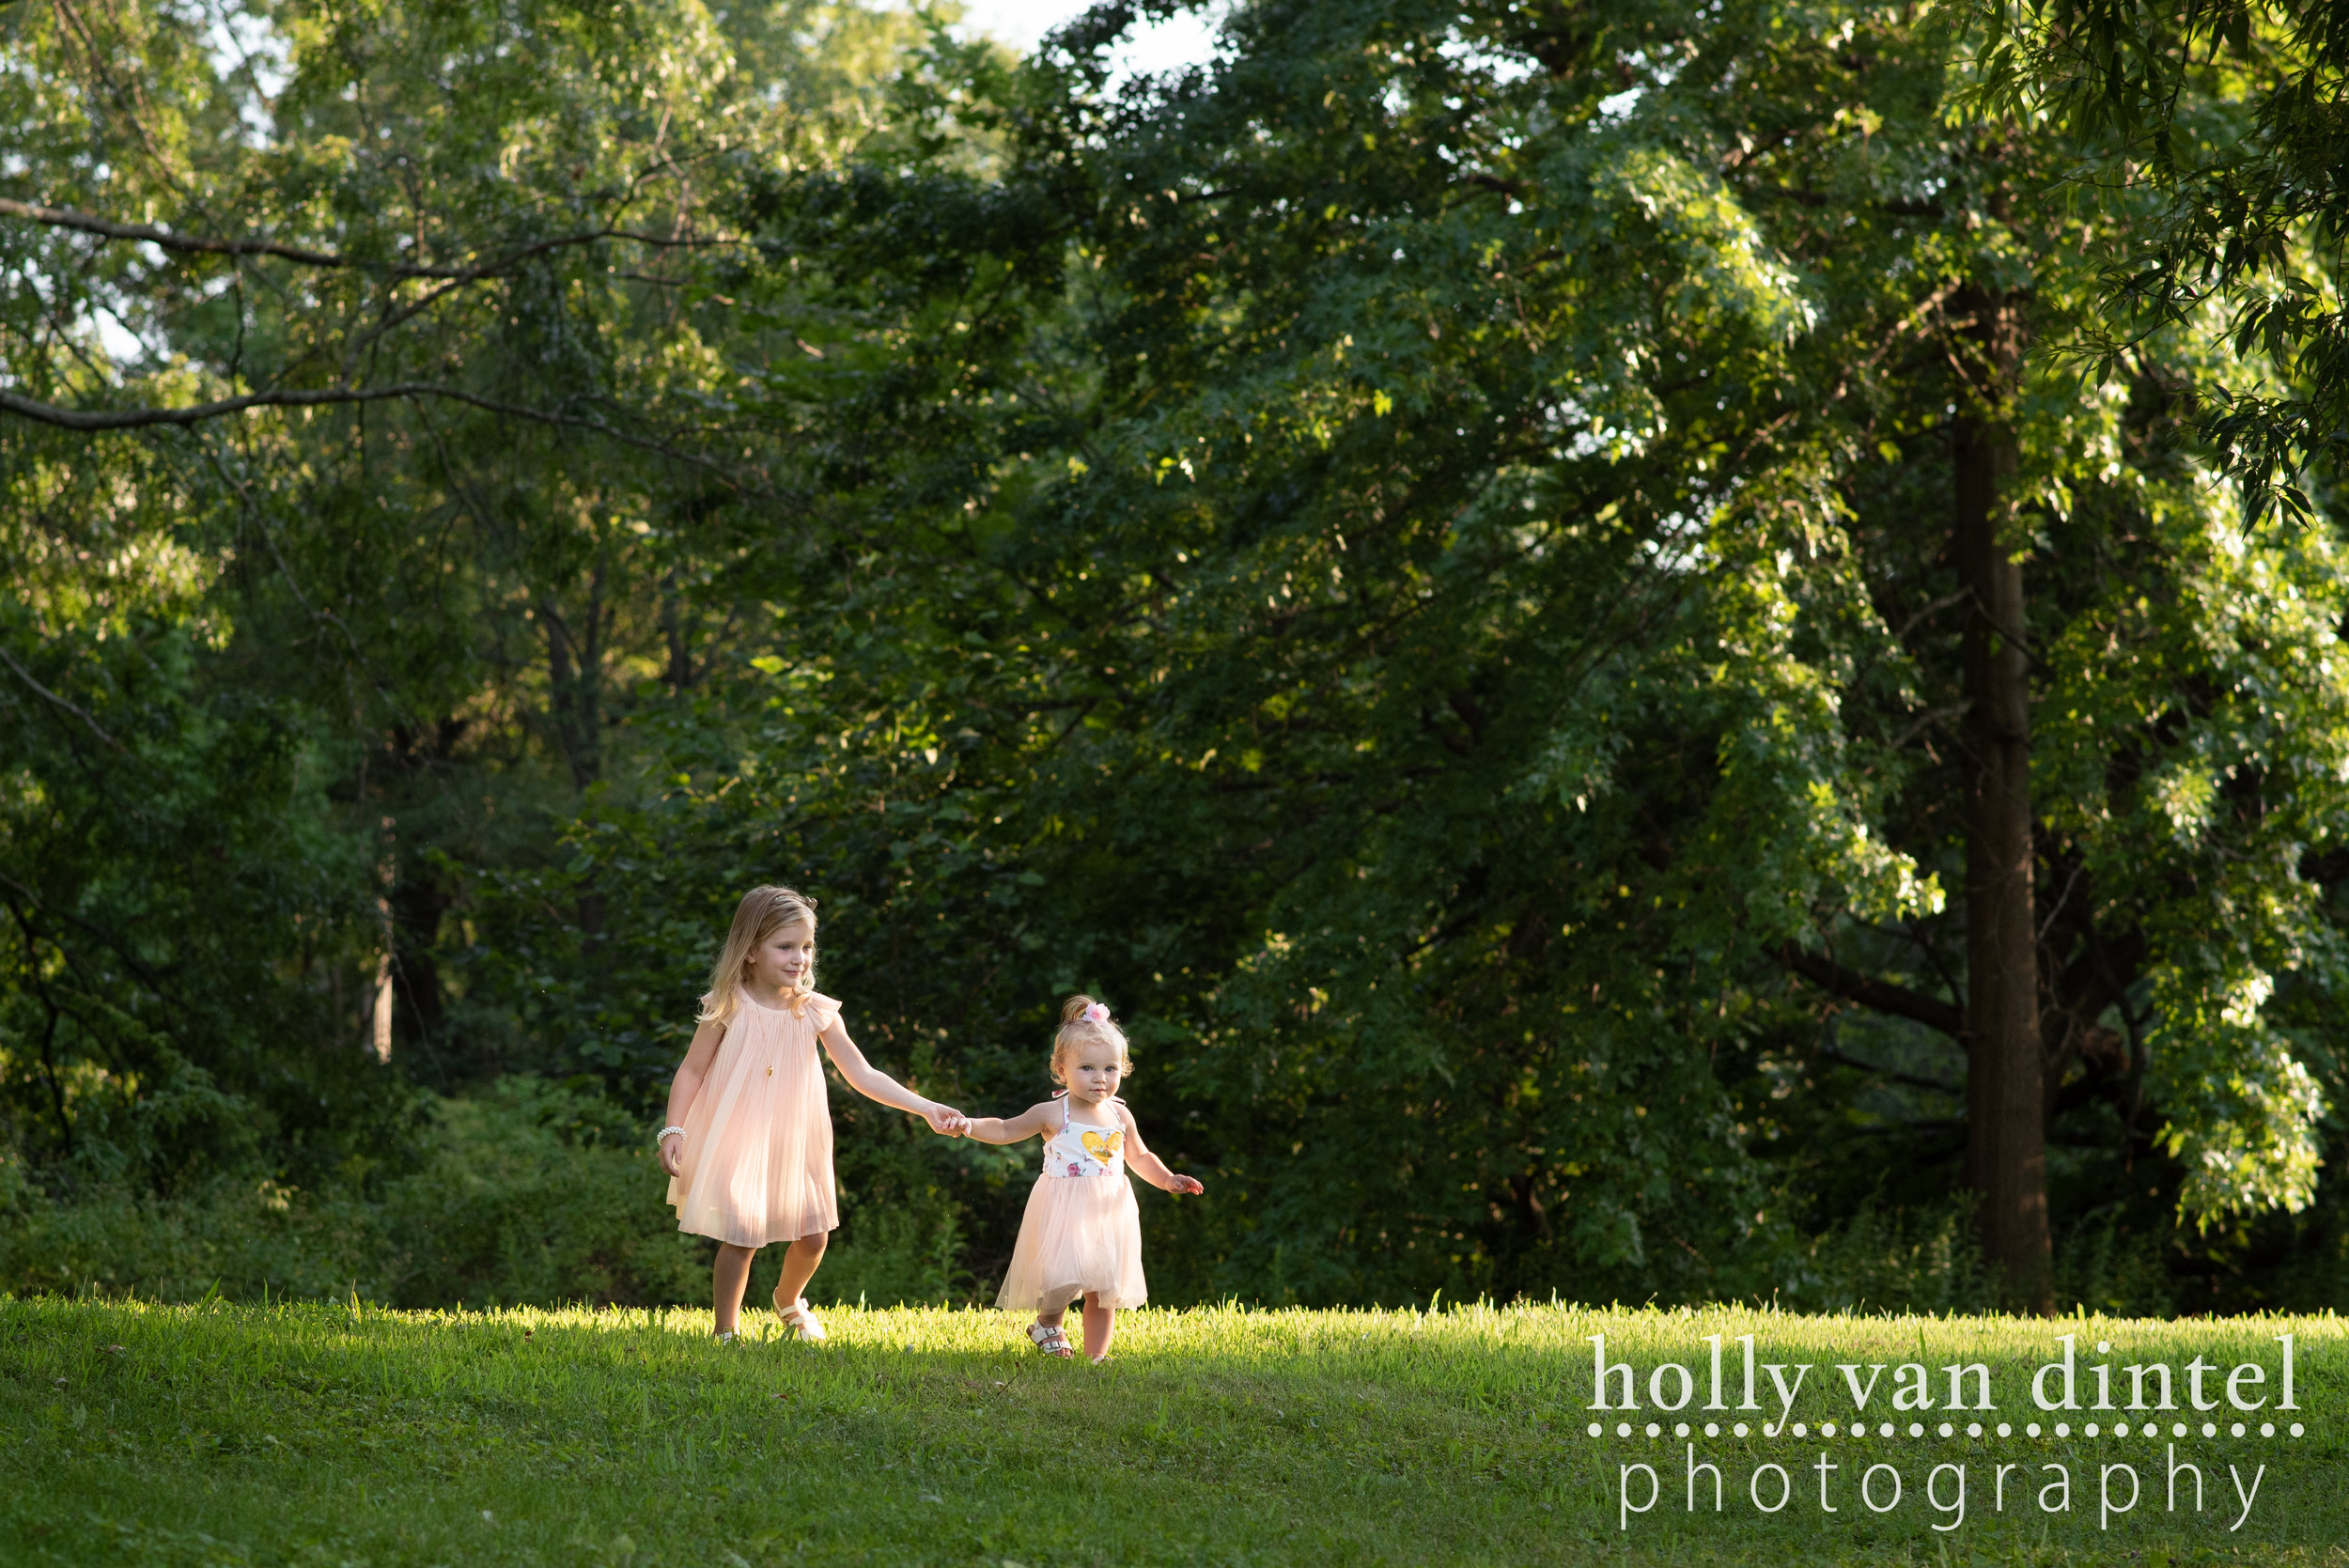 Two little girls holding hands and running through the grass at a park.